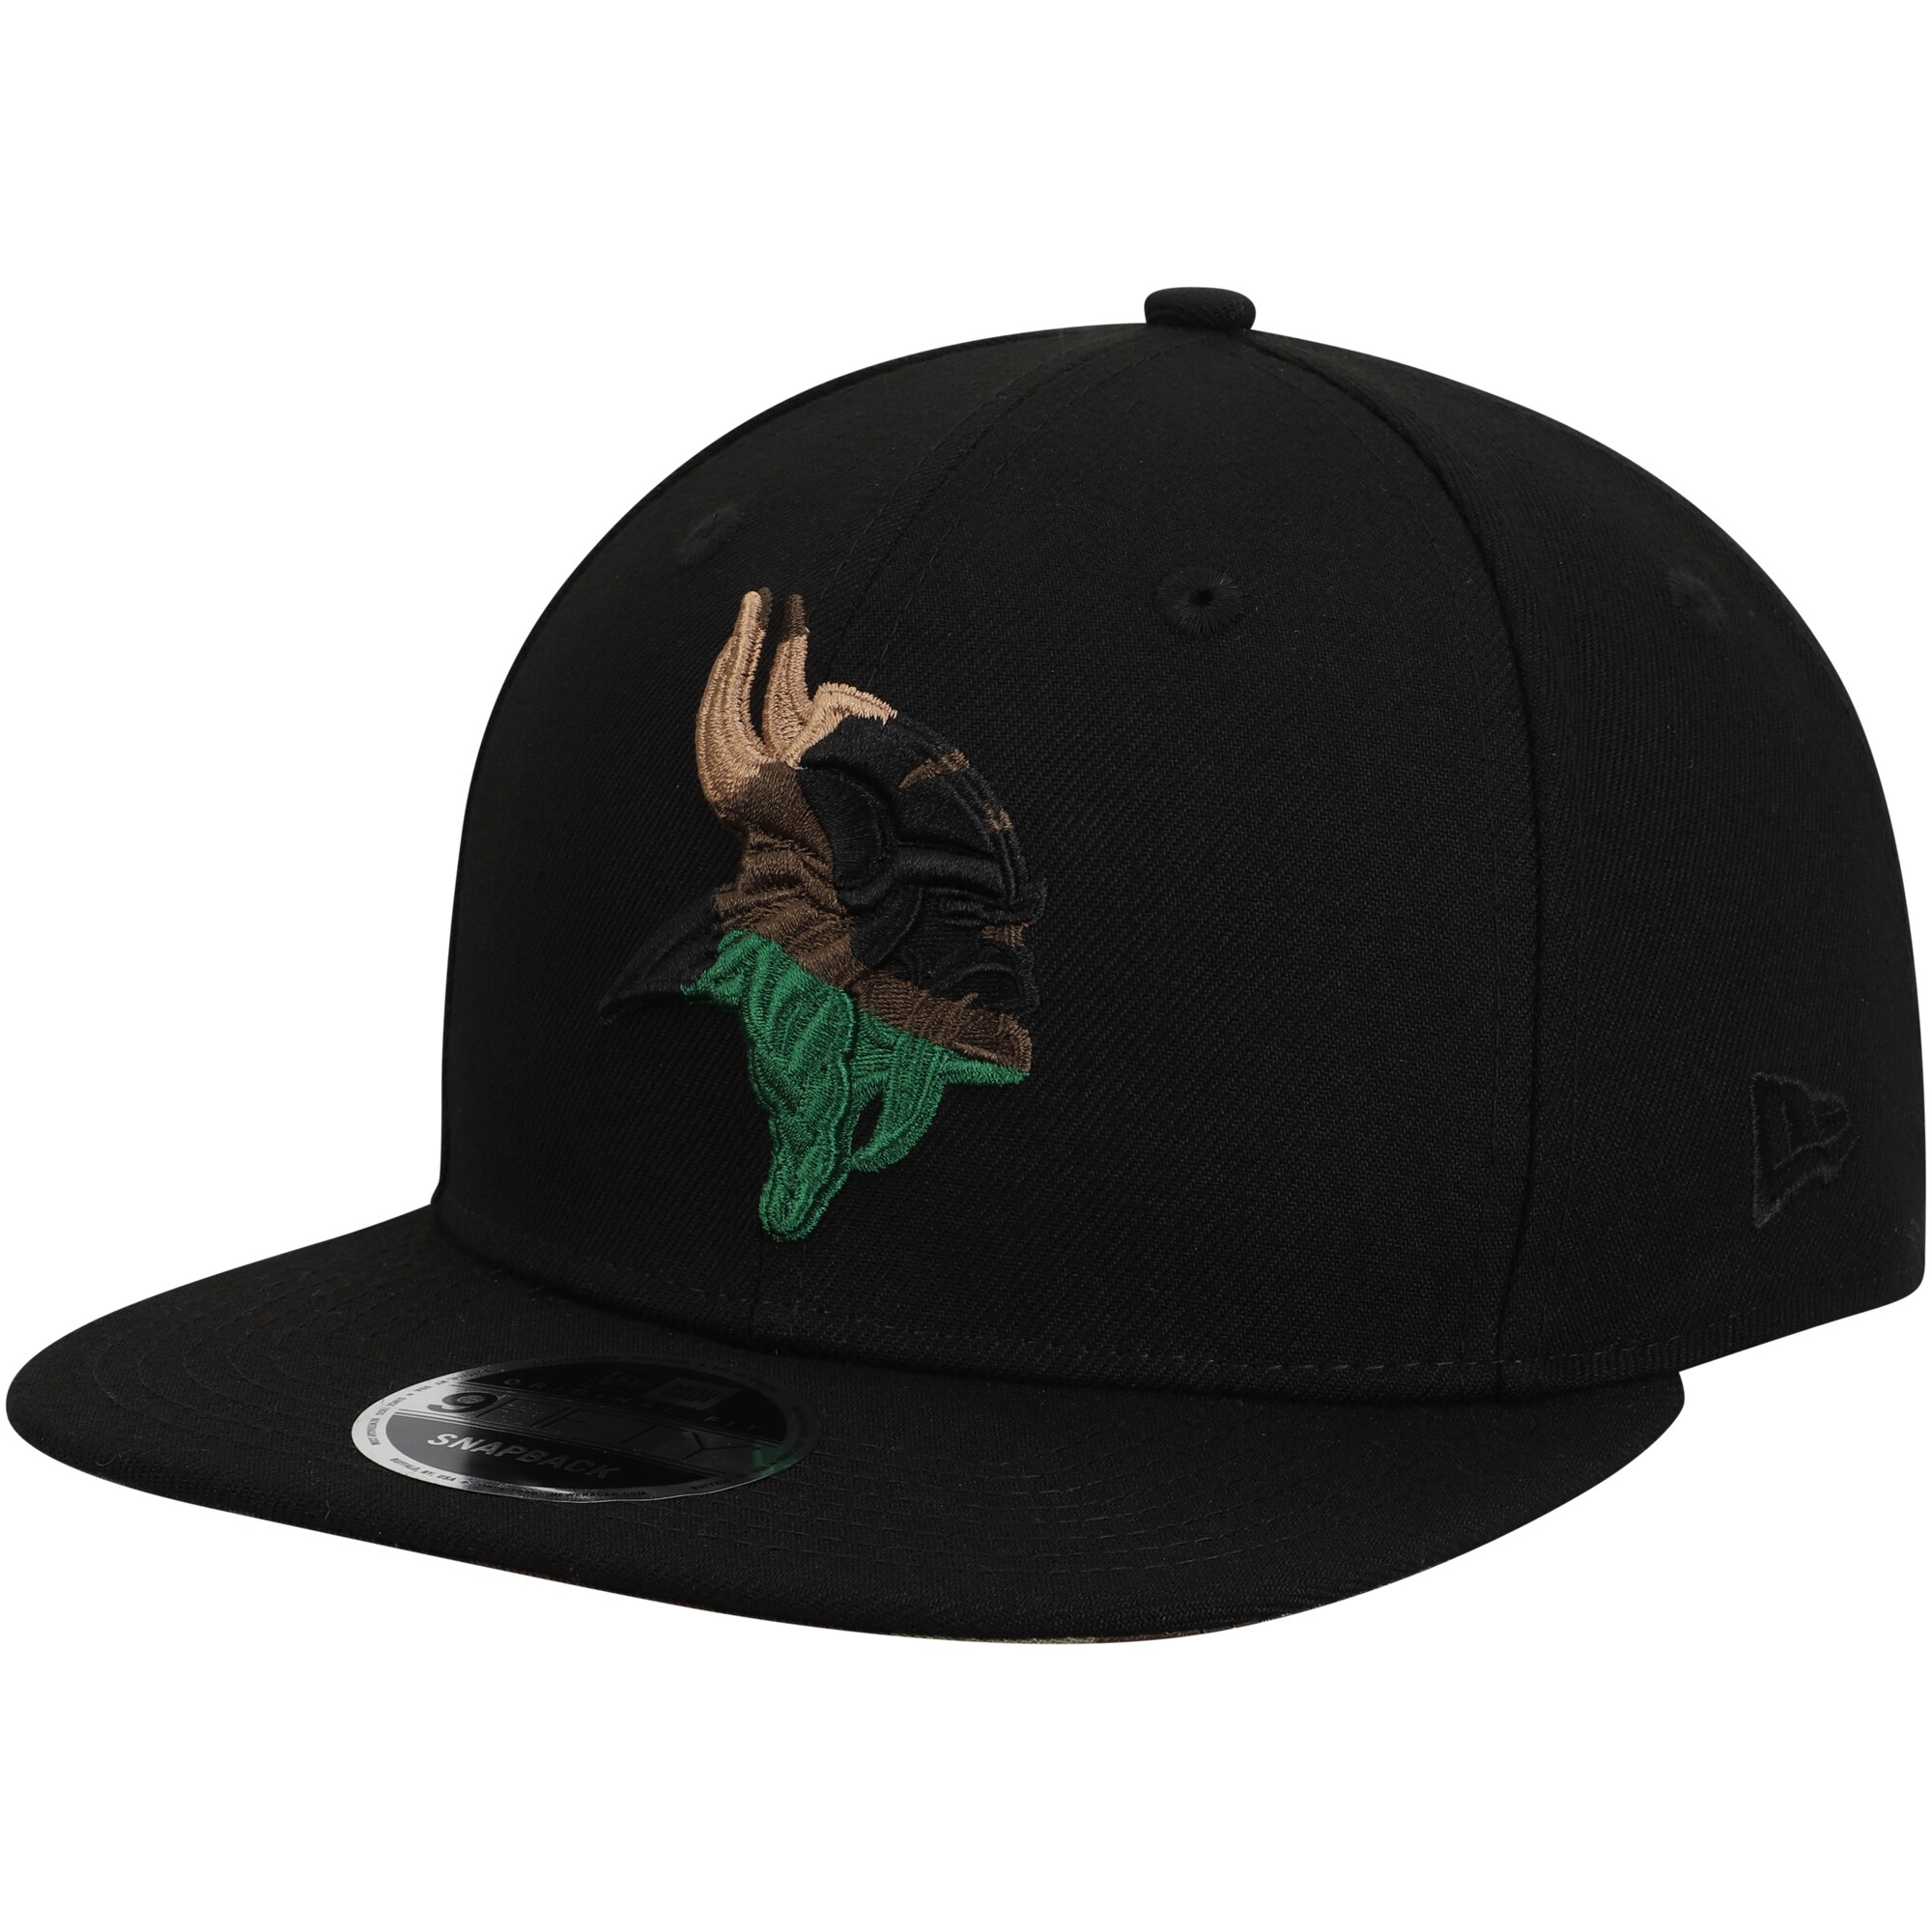 Minnesota Vikings New Era Camo Capped 9FIFTY Adjustable Hat - Black